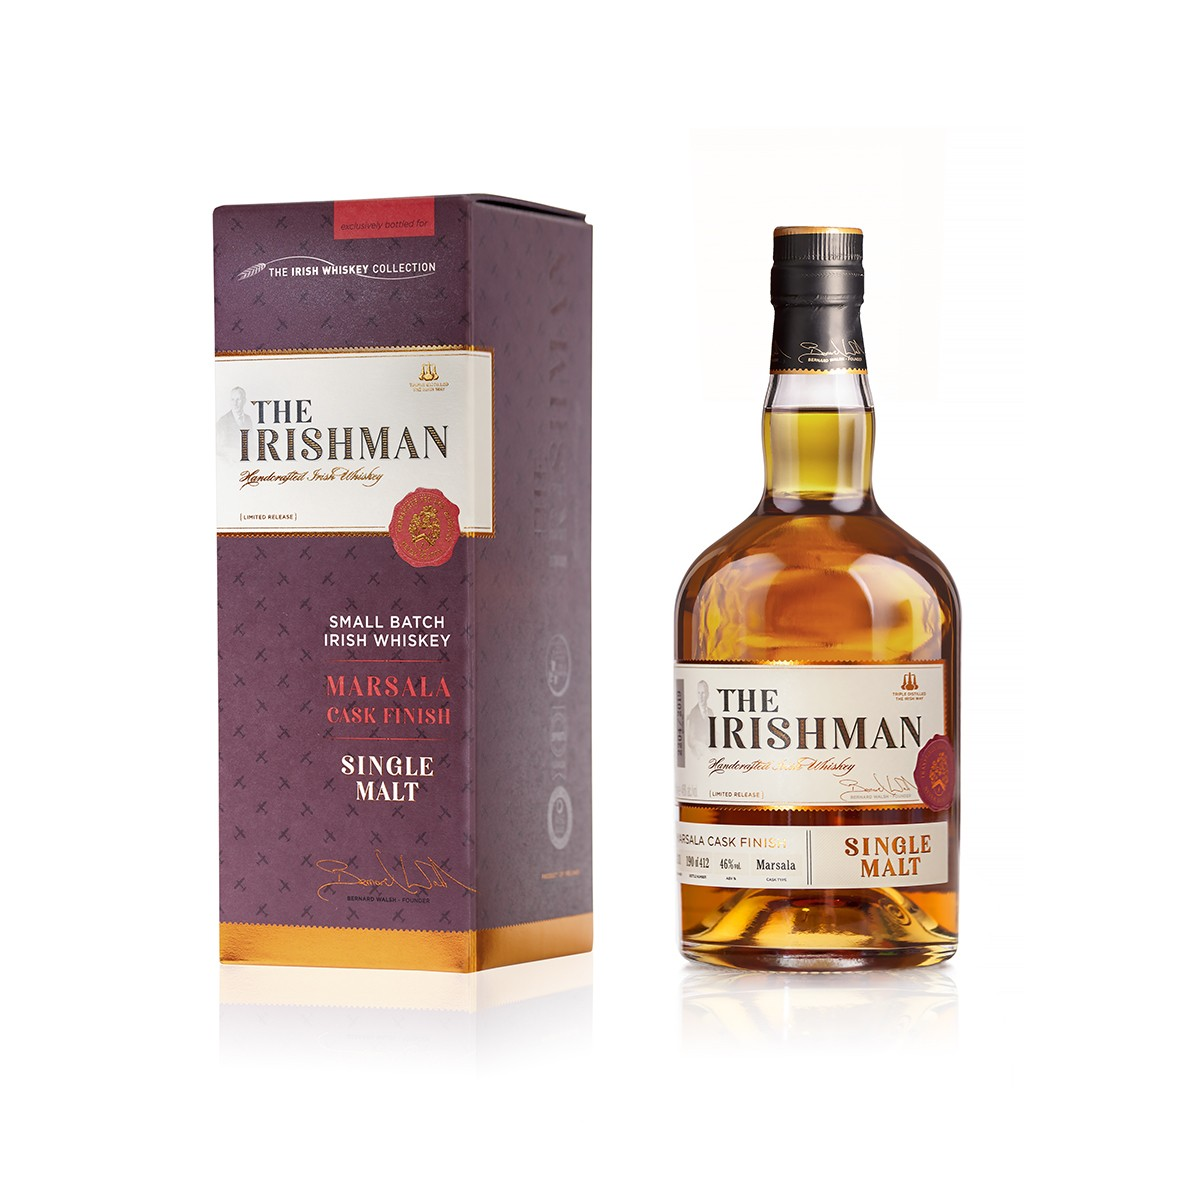 Walsh Whiskey Launches The Irishman Single Malt Marsala Cask Finish Exclusively at The Loop in Cork and Dublin Airport